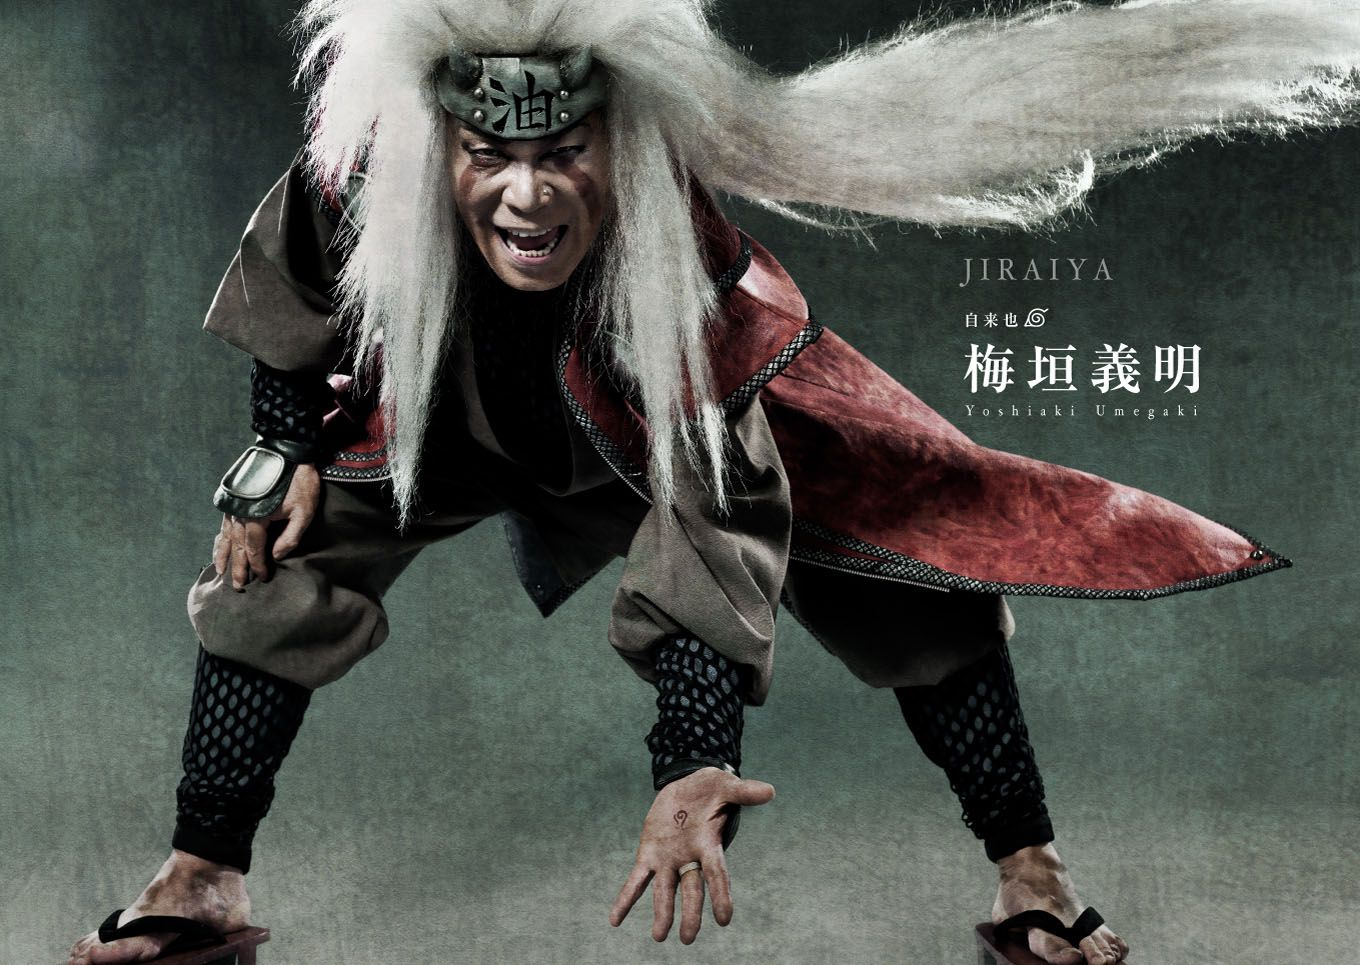 Naruto - live action film - Jiraya